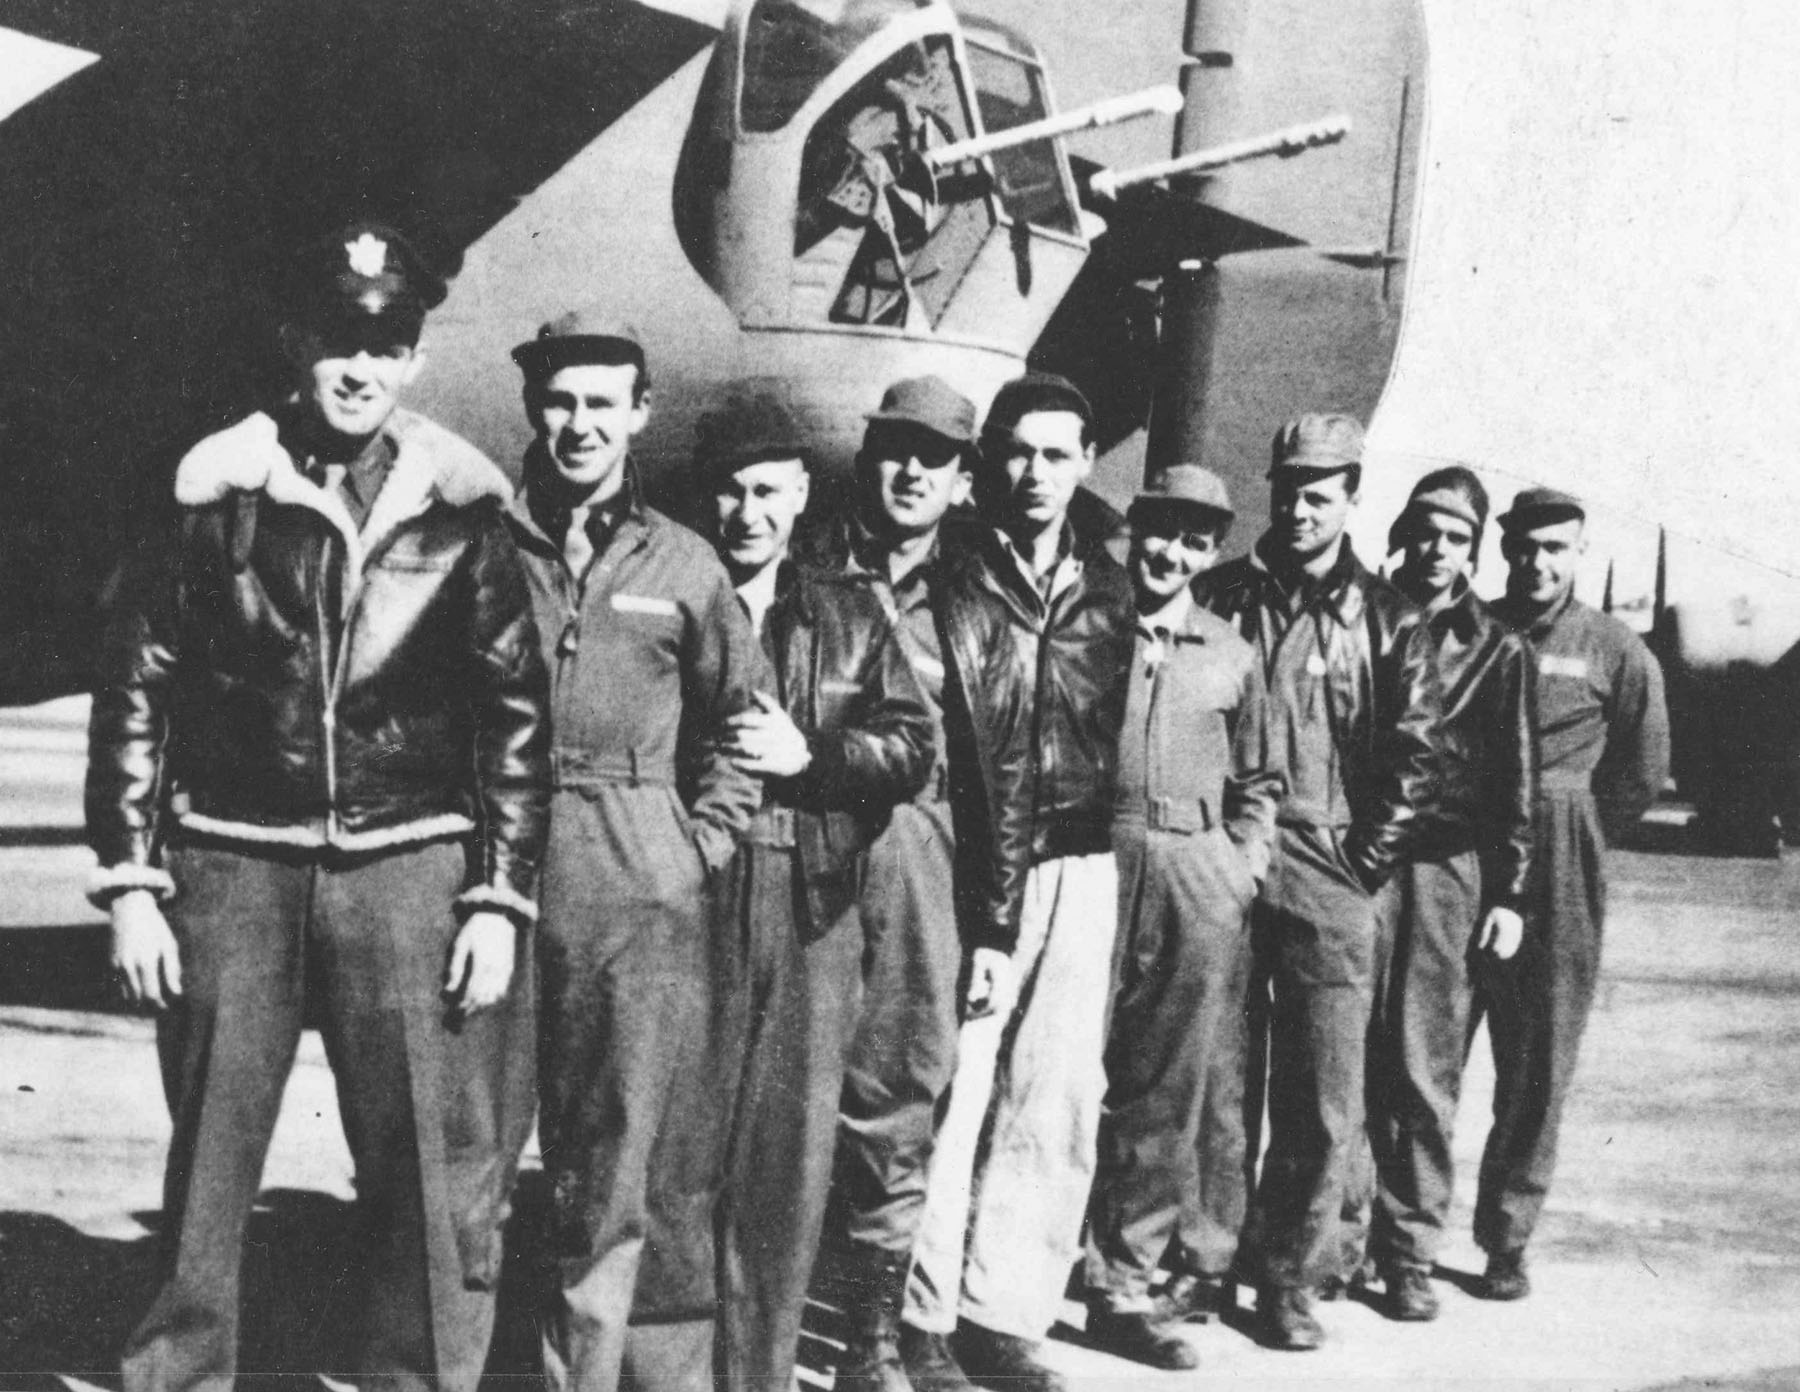 The ill-fated crew of the Lady Be Good, from the left: 1Lt. W.J. Hatton, pilot; 2Lt. R.F. Toner, copilot; 2Lt. D.P. Hays, navigator; 2Lt. J.S. Woravka, bombardier; TSgt. H.J. Ripslinger, engineer; TSgt. R.E. LaMotte, radio operator; SSgt. G.E. Shelly, gunner; SSgt. V.L. Moore, gunner; and SSgt. S.E. Adams, gunner. (U.S. Air Force photo)